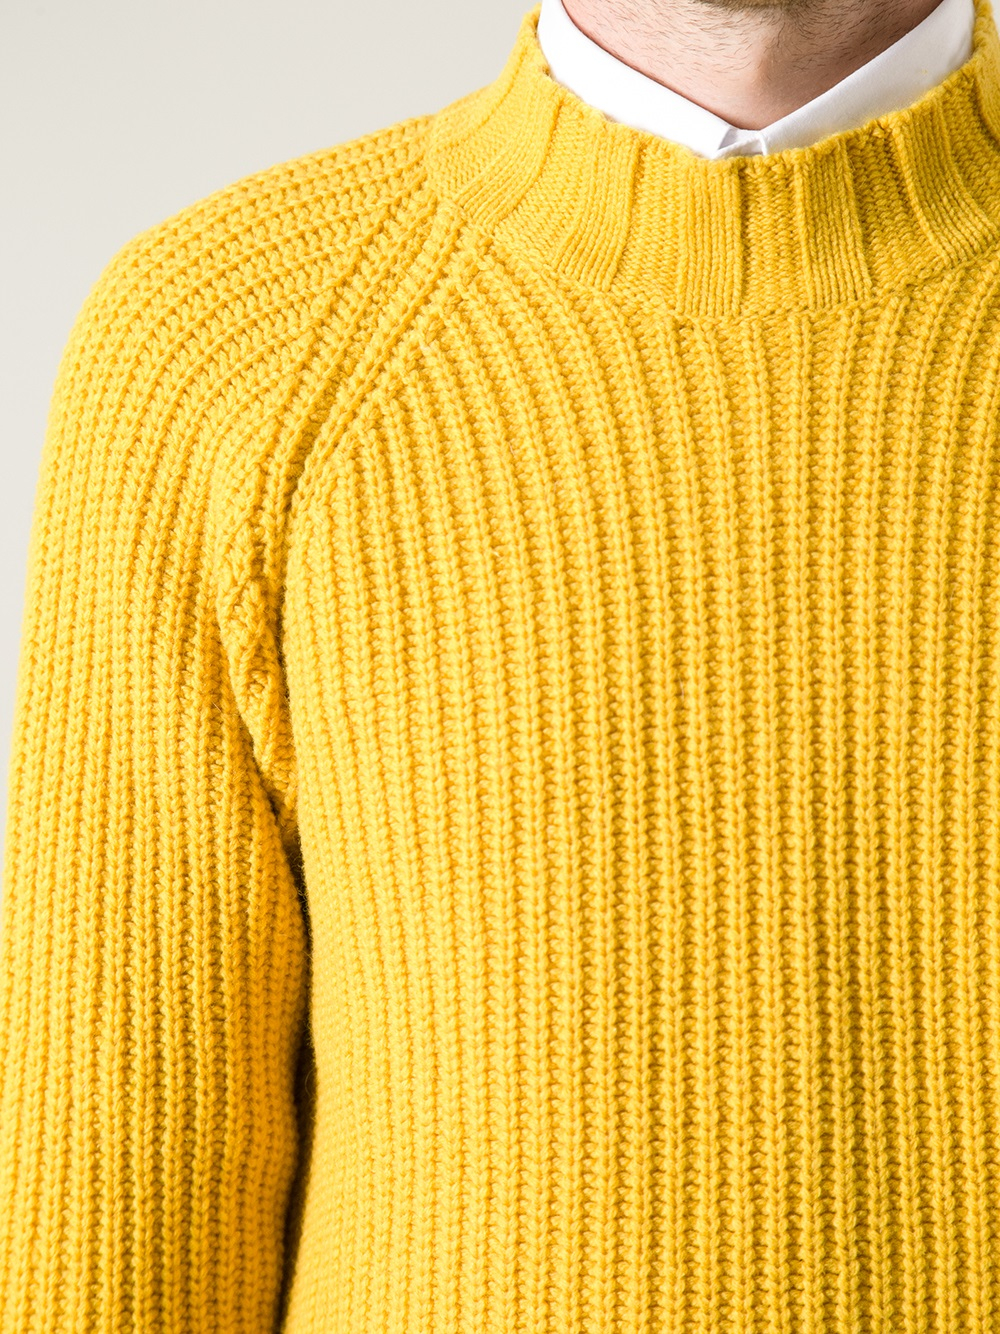 Knitting Journal App : Journal heavy space knit sweater in yellow for men